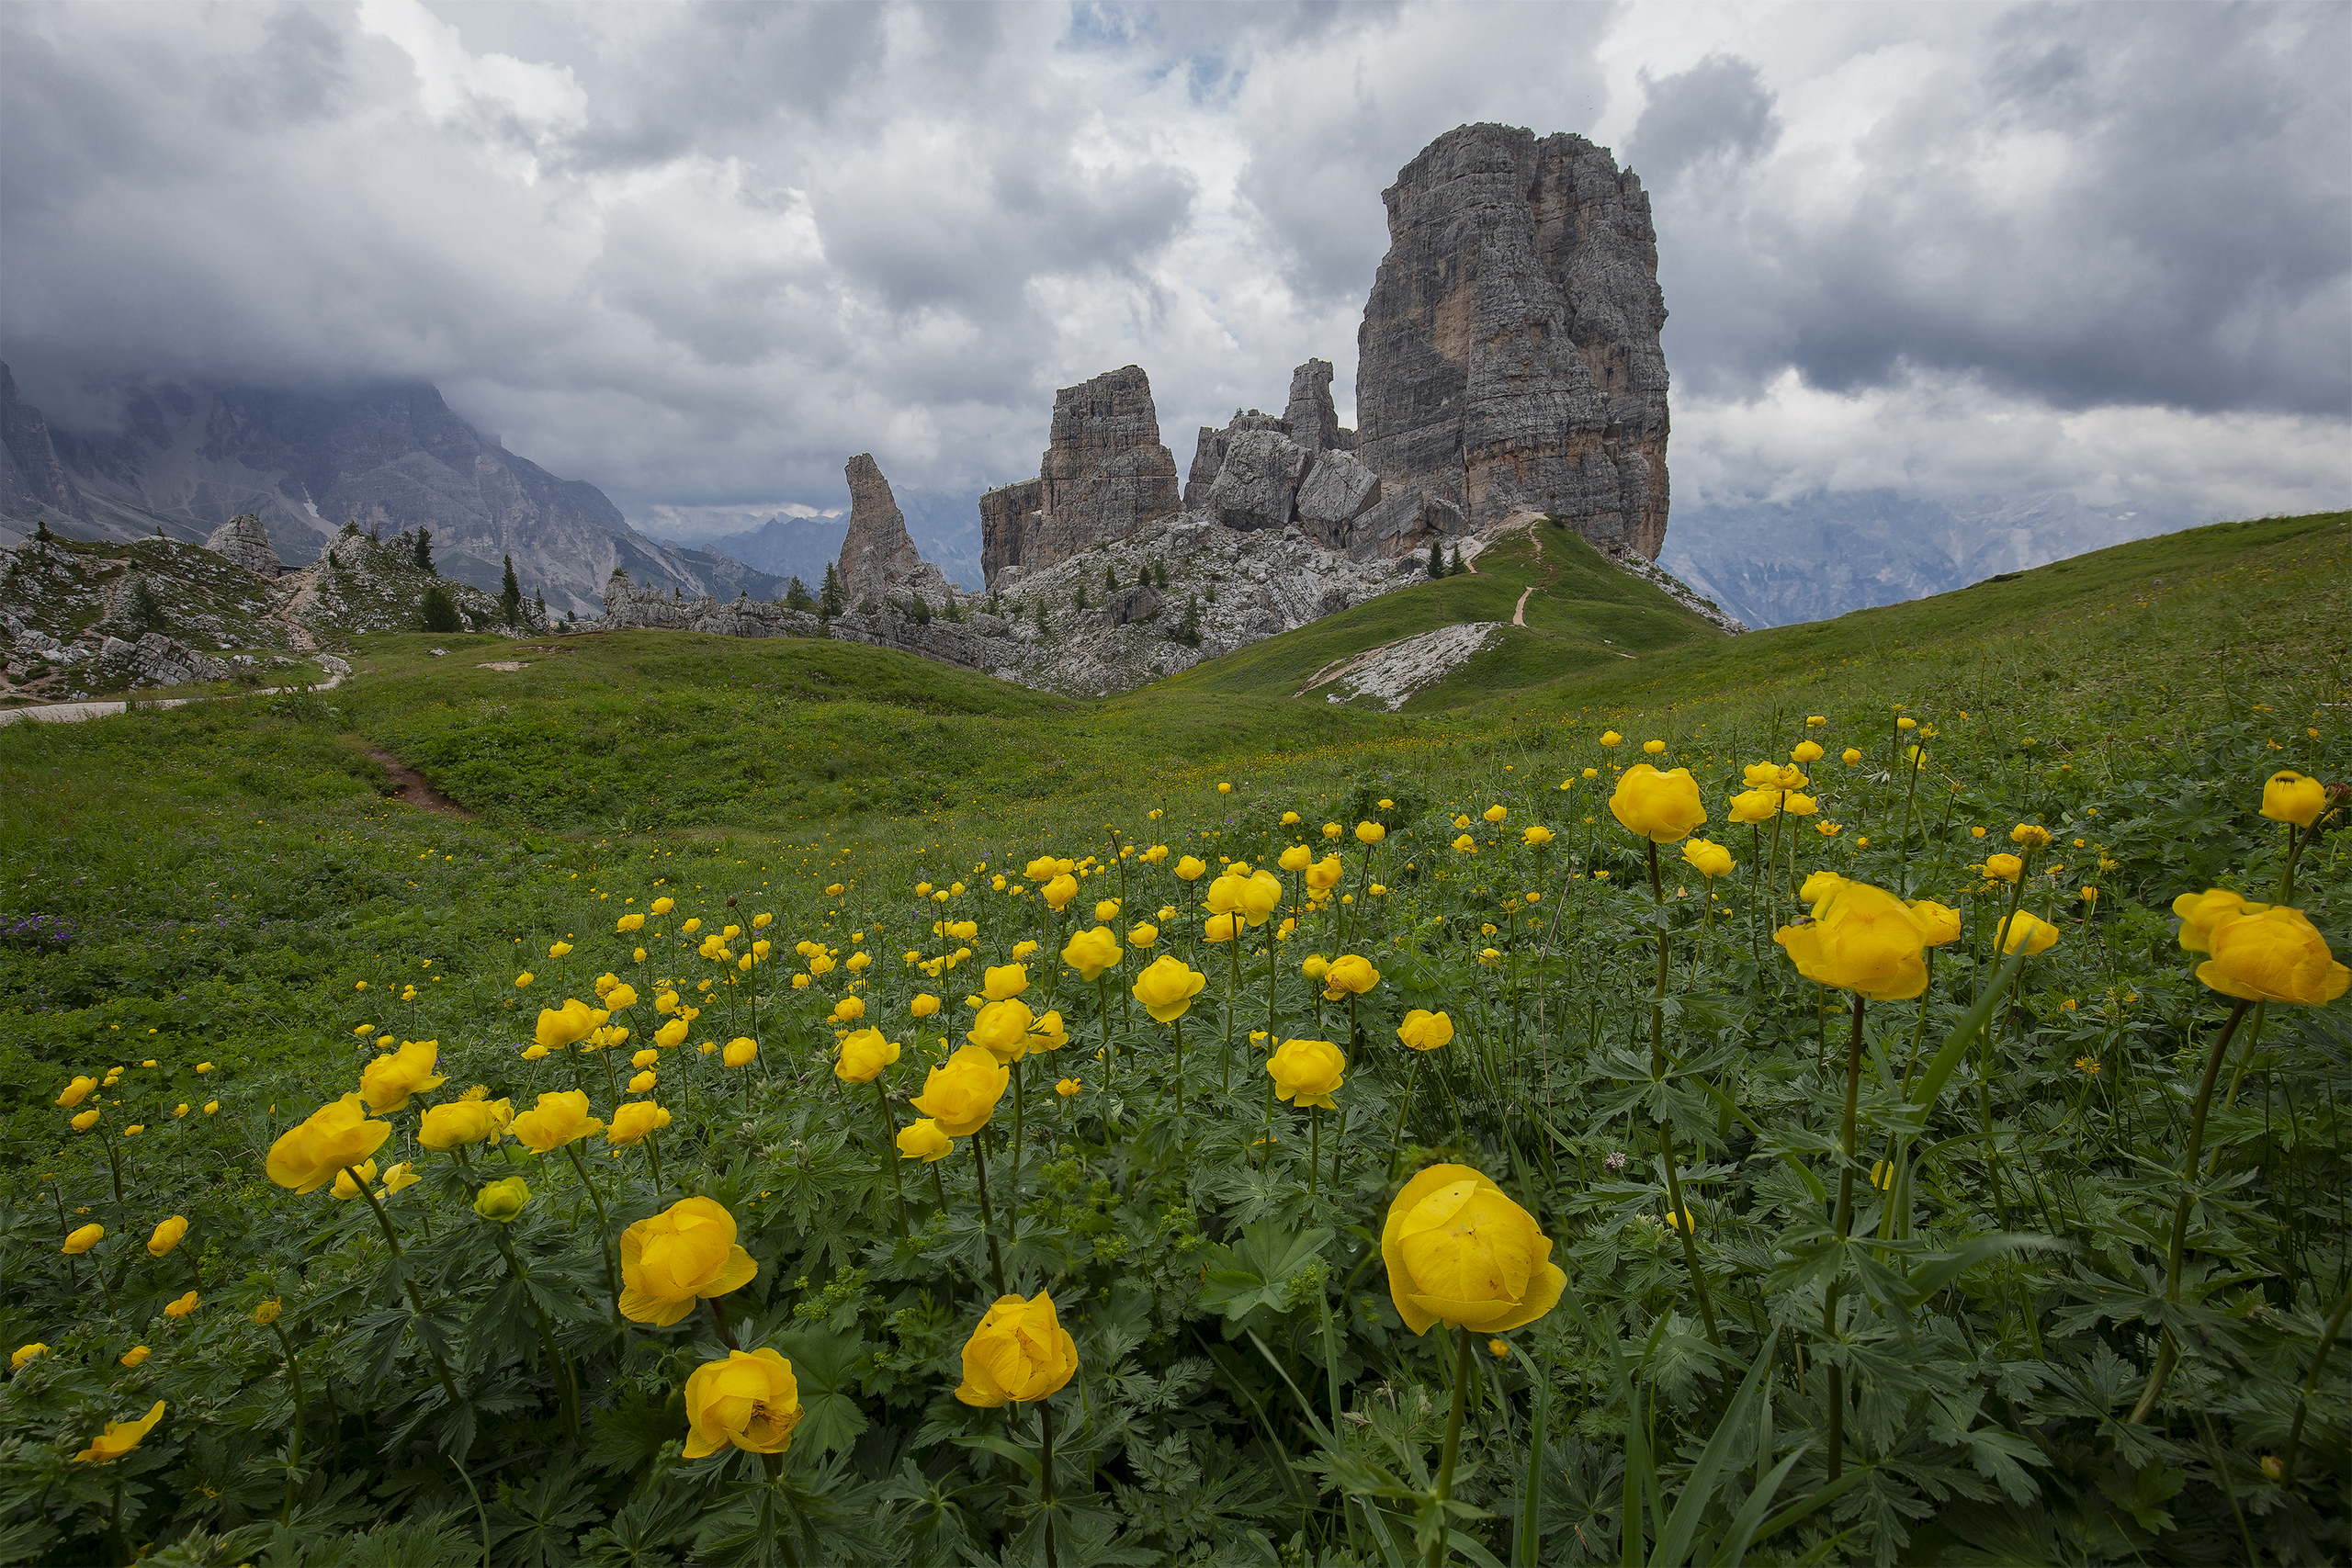 Yellow Flowers in front of Cinque Torri